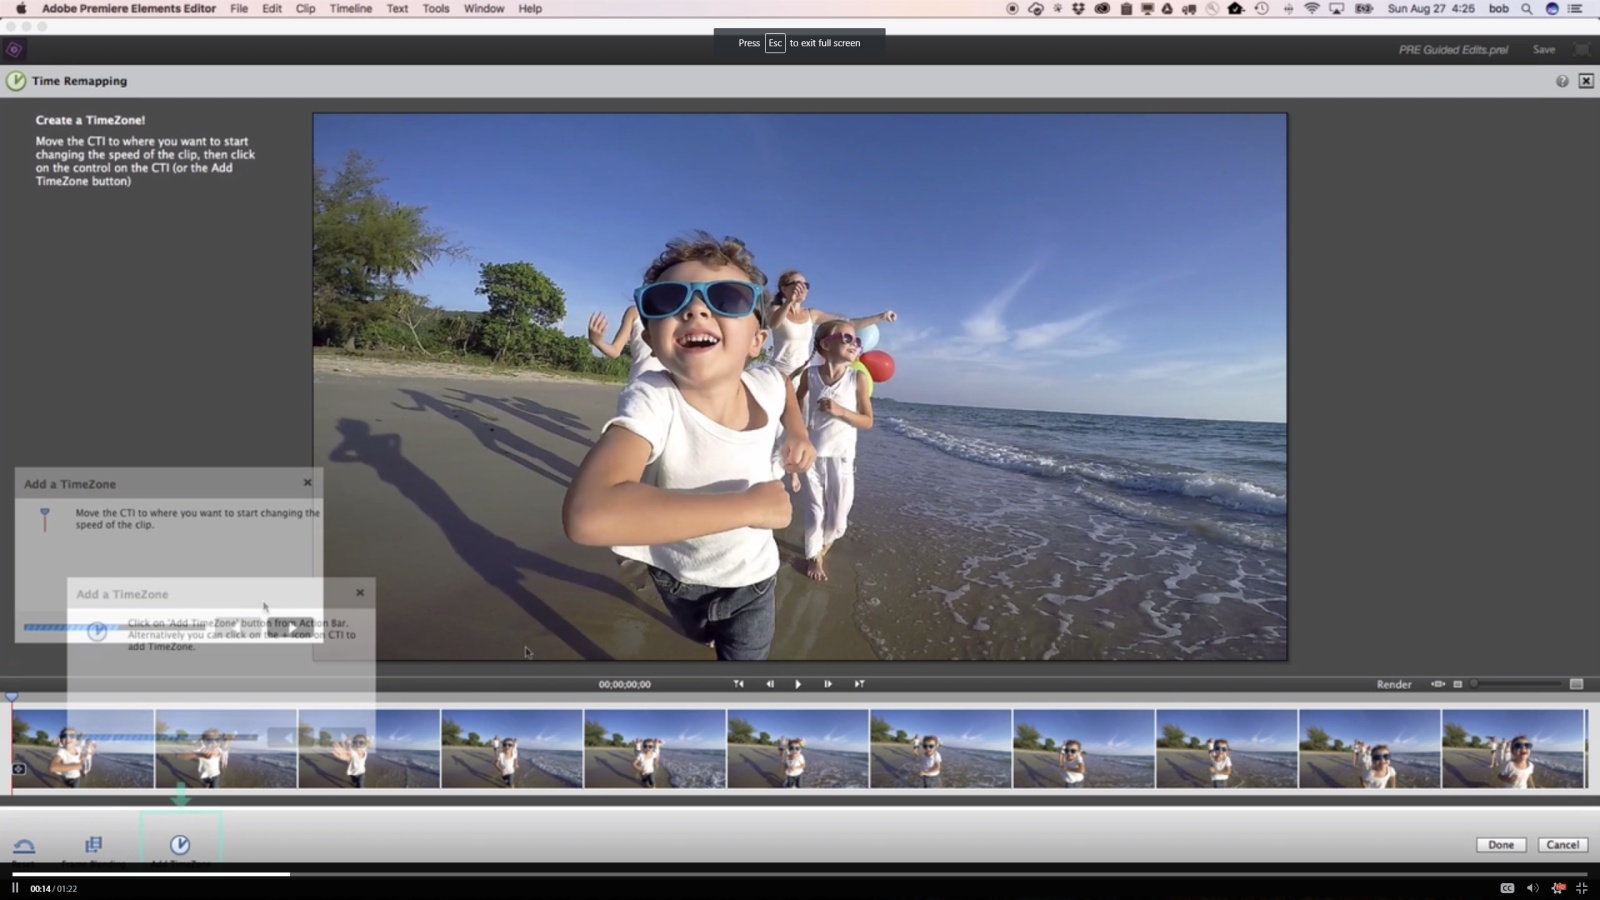 Adobe Photoshop Elements 2020 Review.Adobe Premiere Elements 2020 Free Download Videohelp